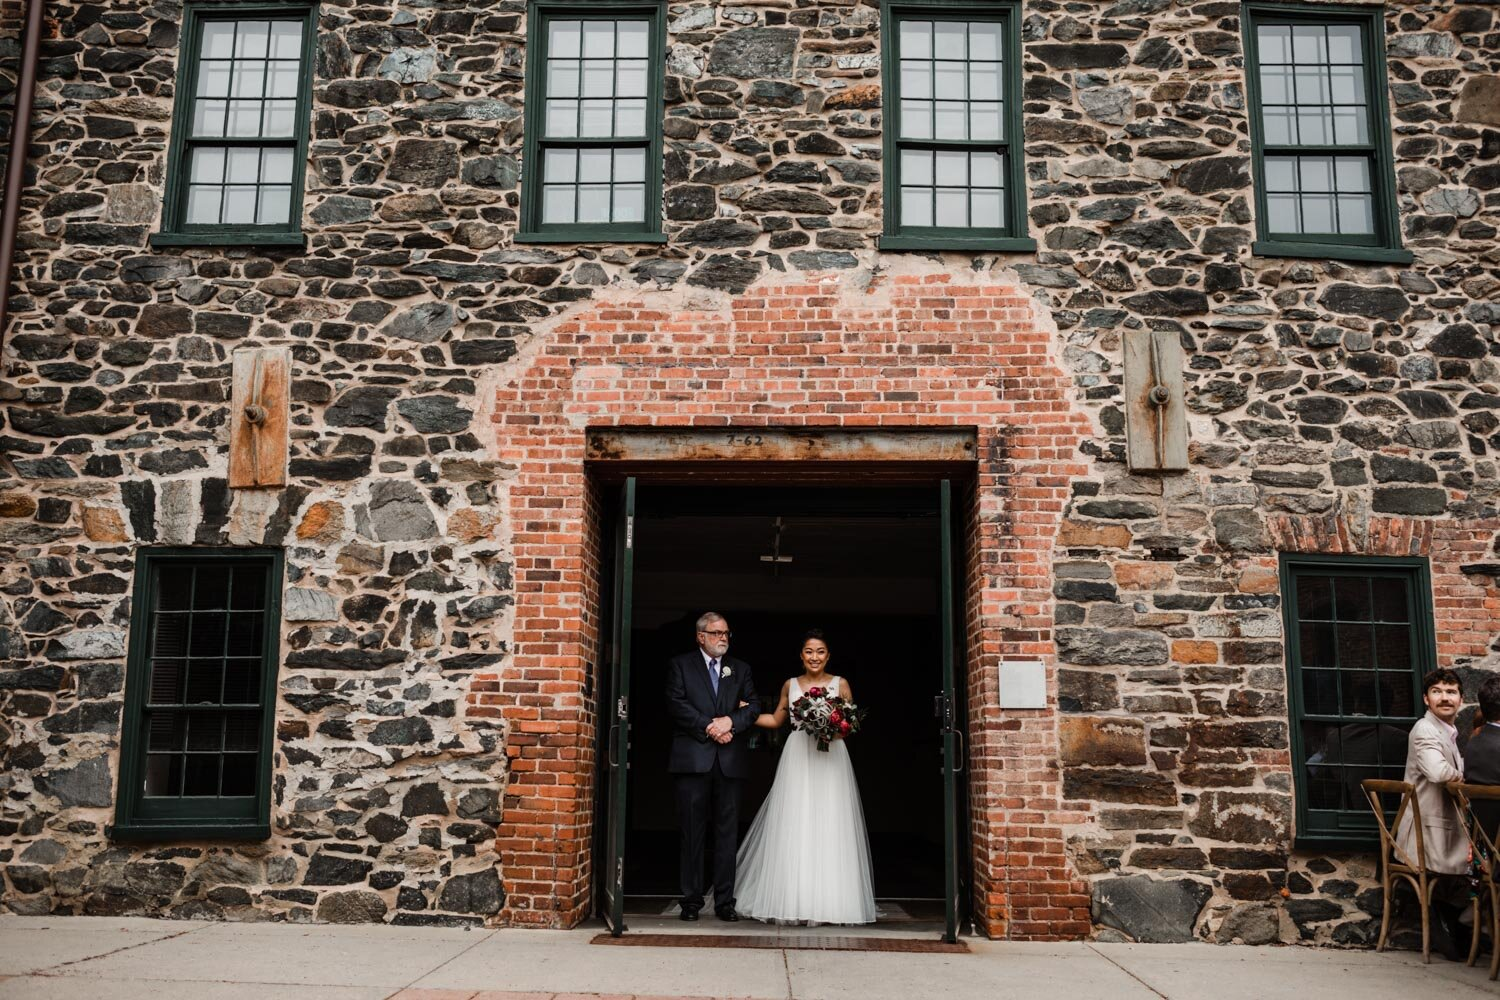 Mt Washington Mill Dye House industrial Baltimore wedding by Barbara O Photography-180.jpg